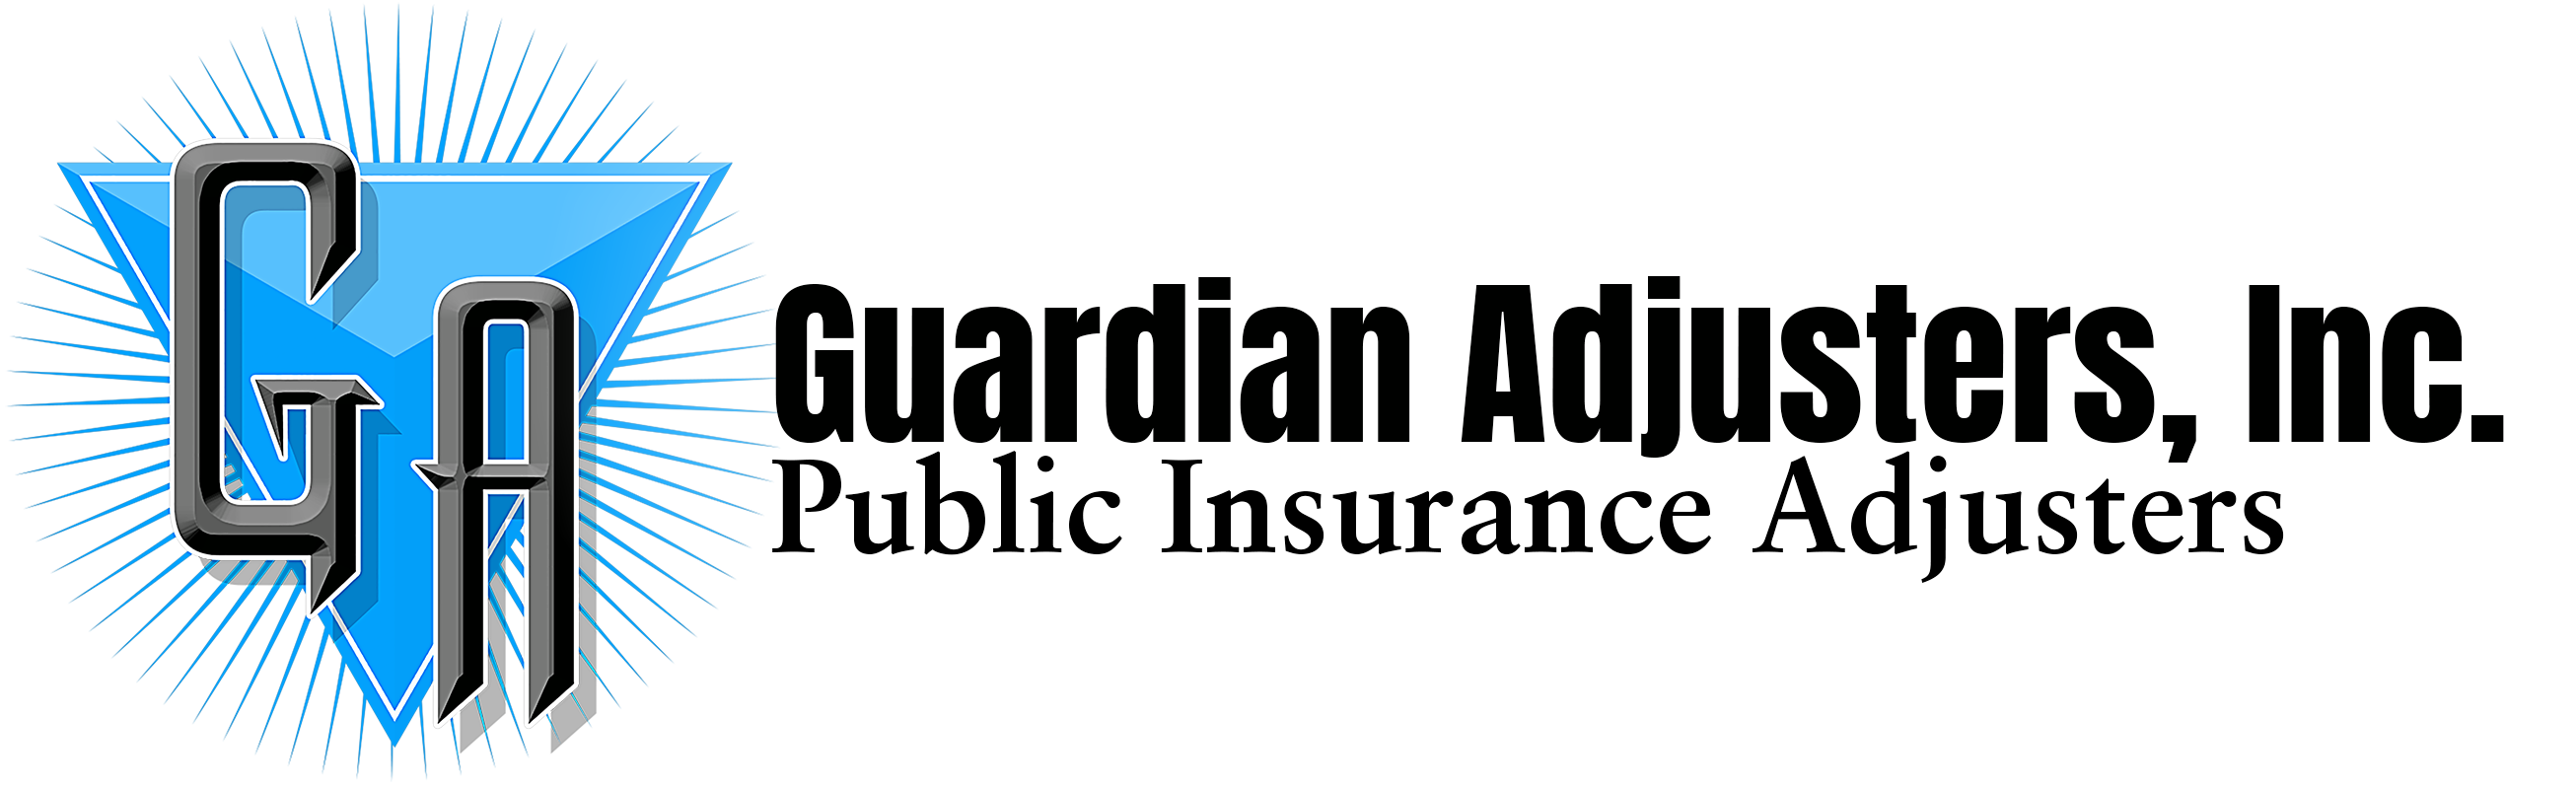 Professional Services - Guardian Adjusters